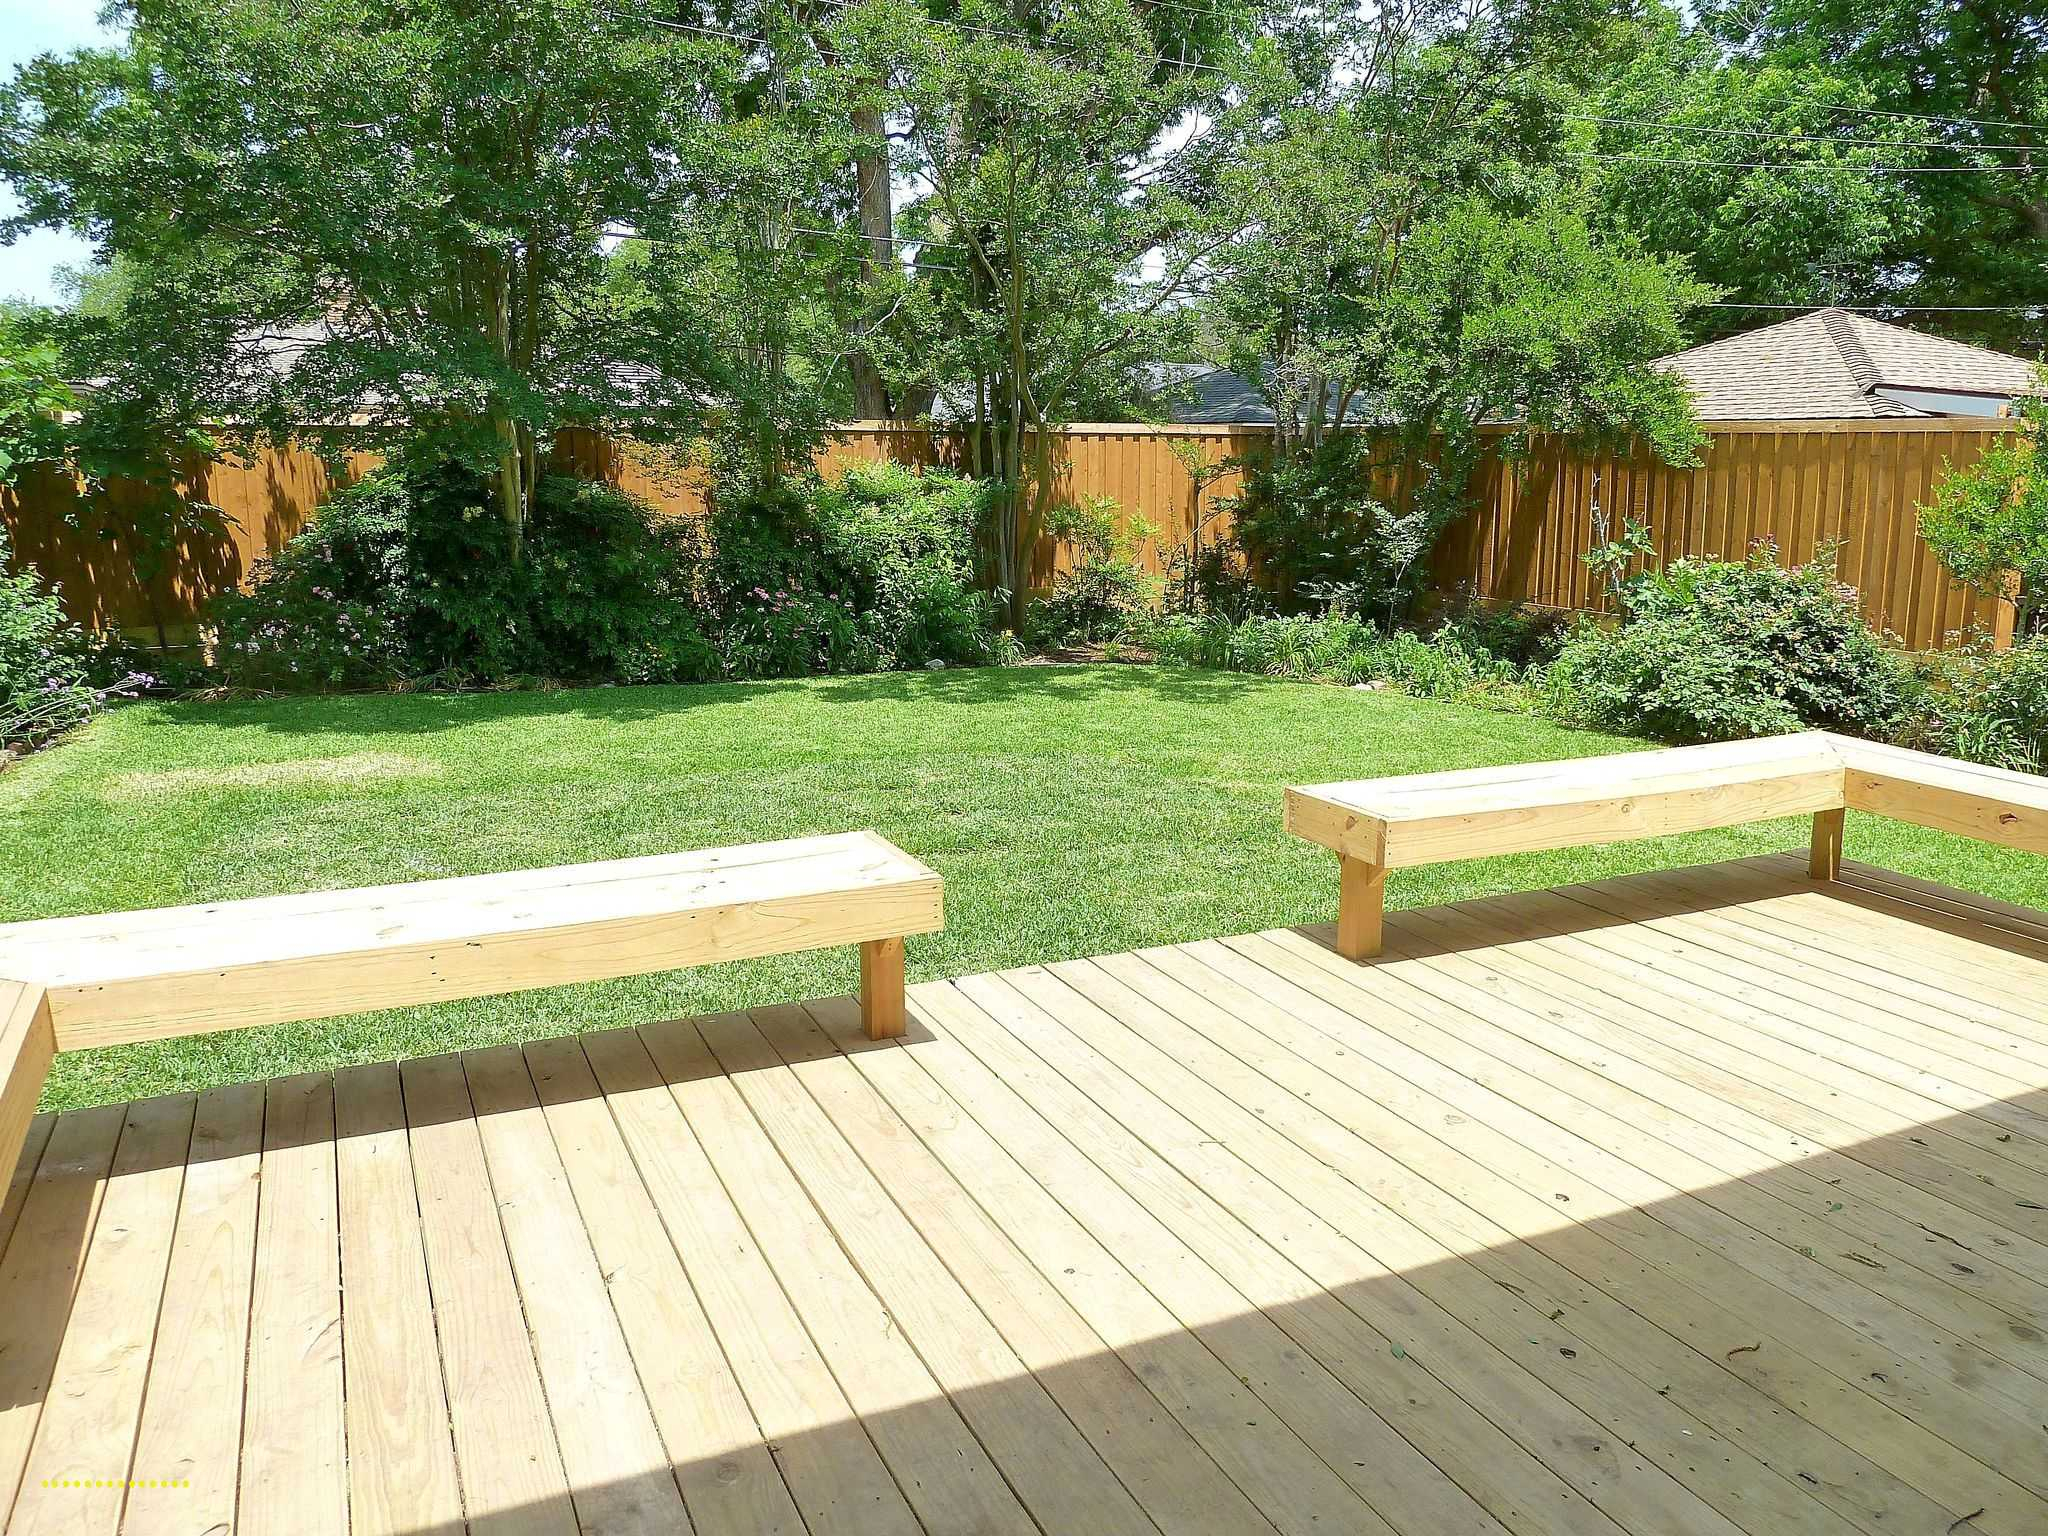 Deck Designs For Small Backyards Fresh 30 Best Small Deck Ideas with Backyard Small Deck Ideas